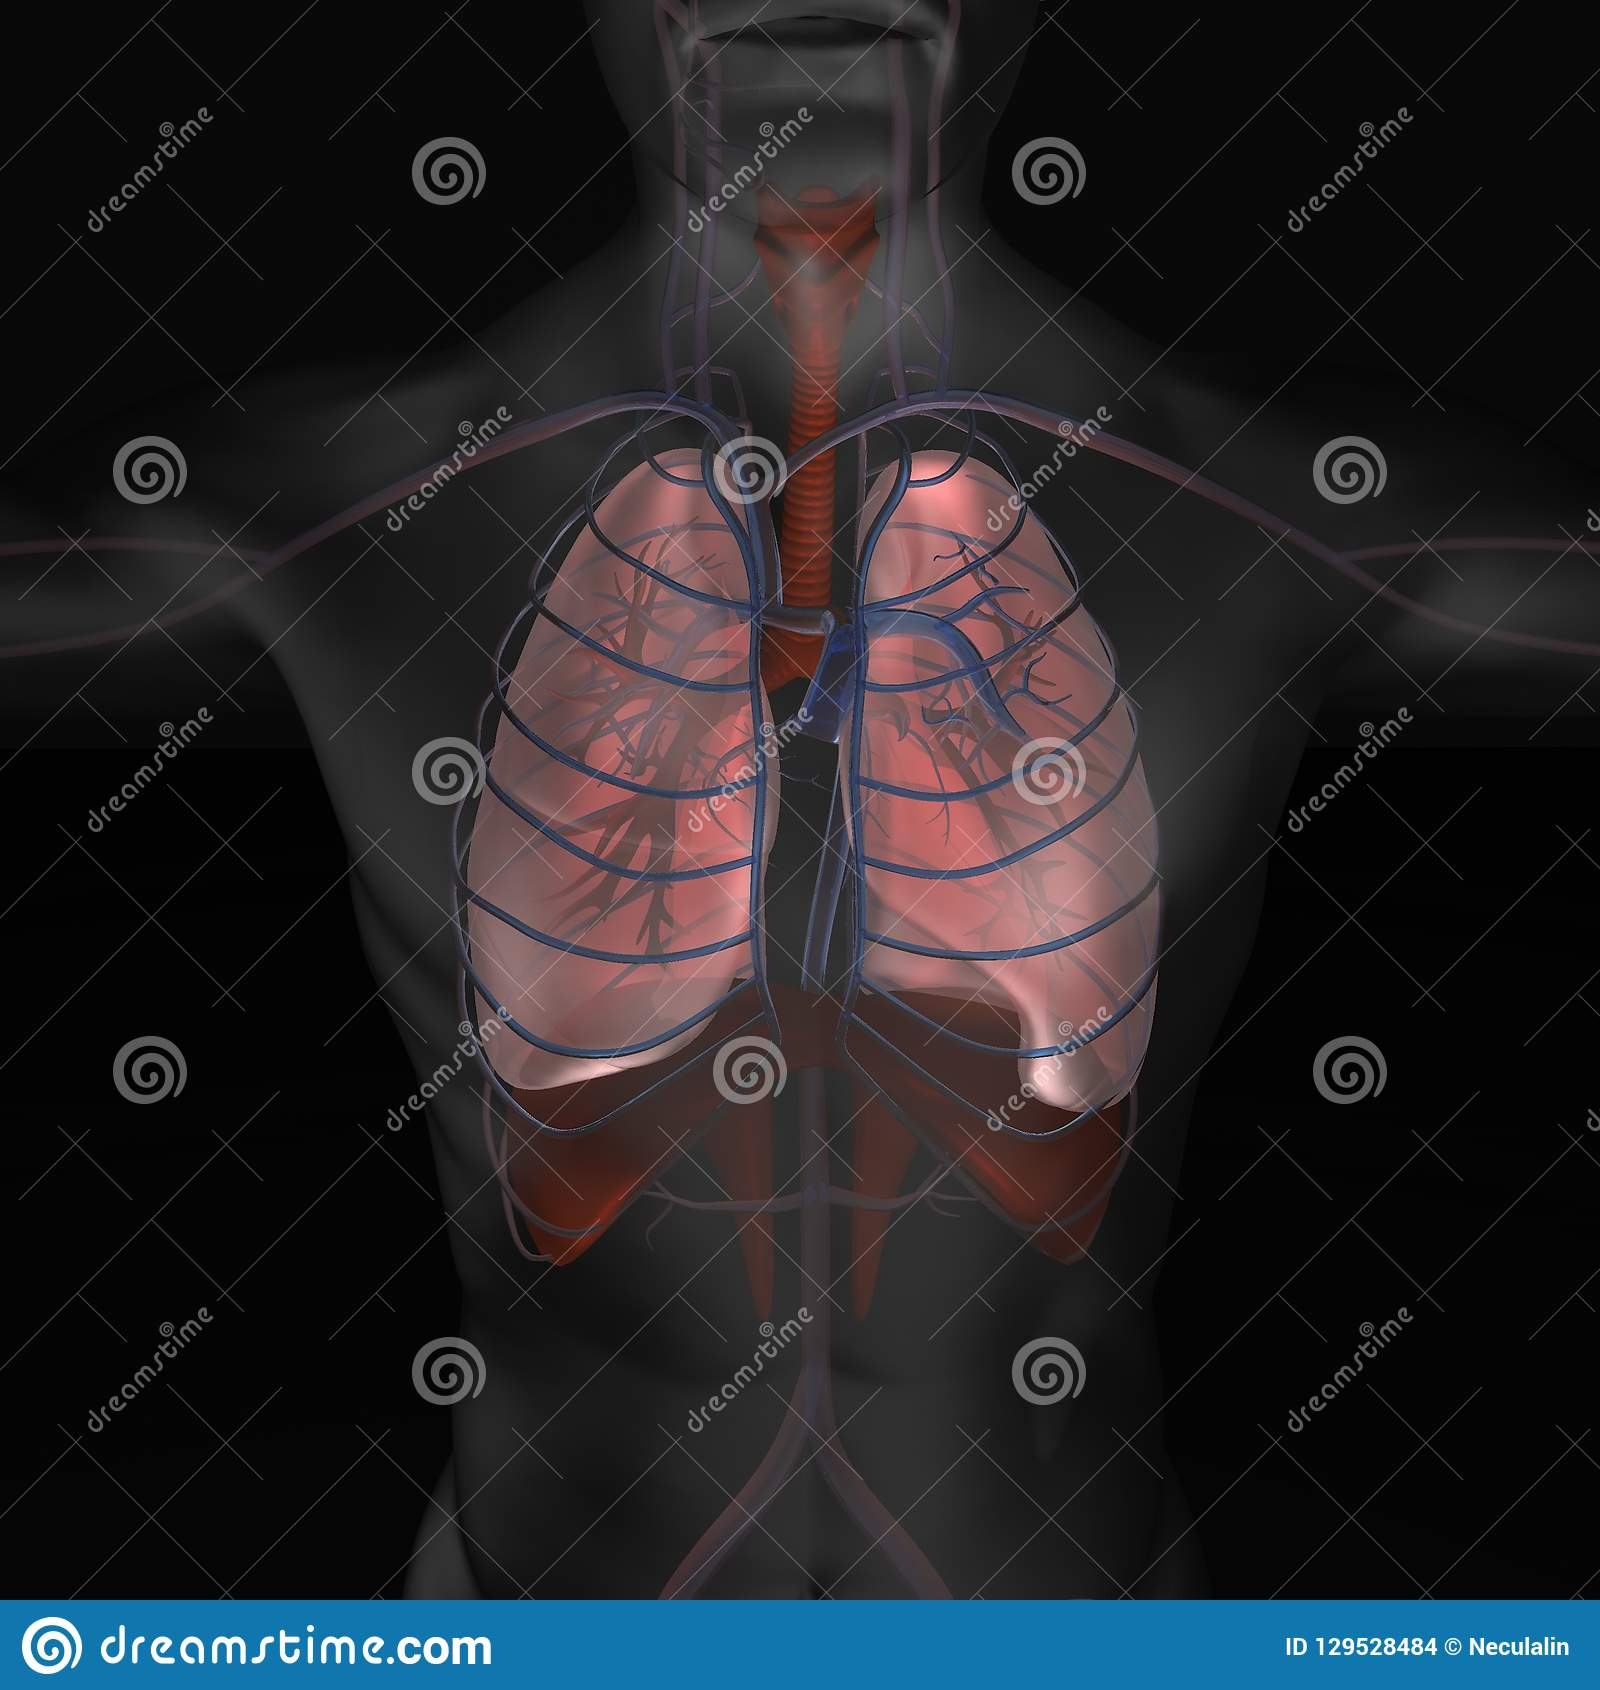 3d Illustration Of Human Body Organic Parts Lungs Illustration